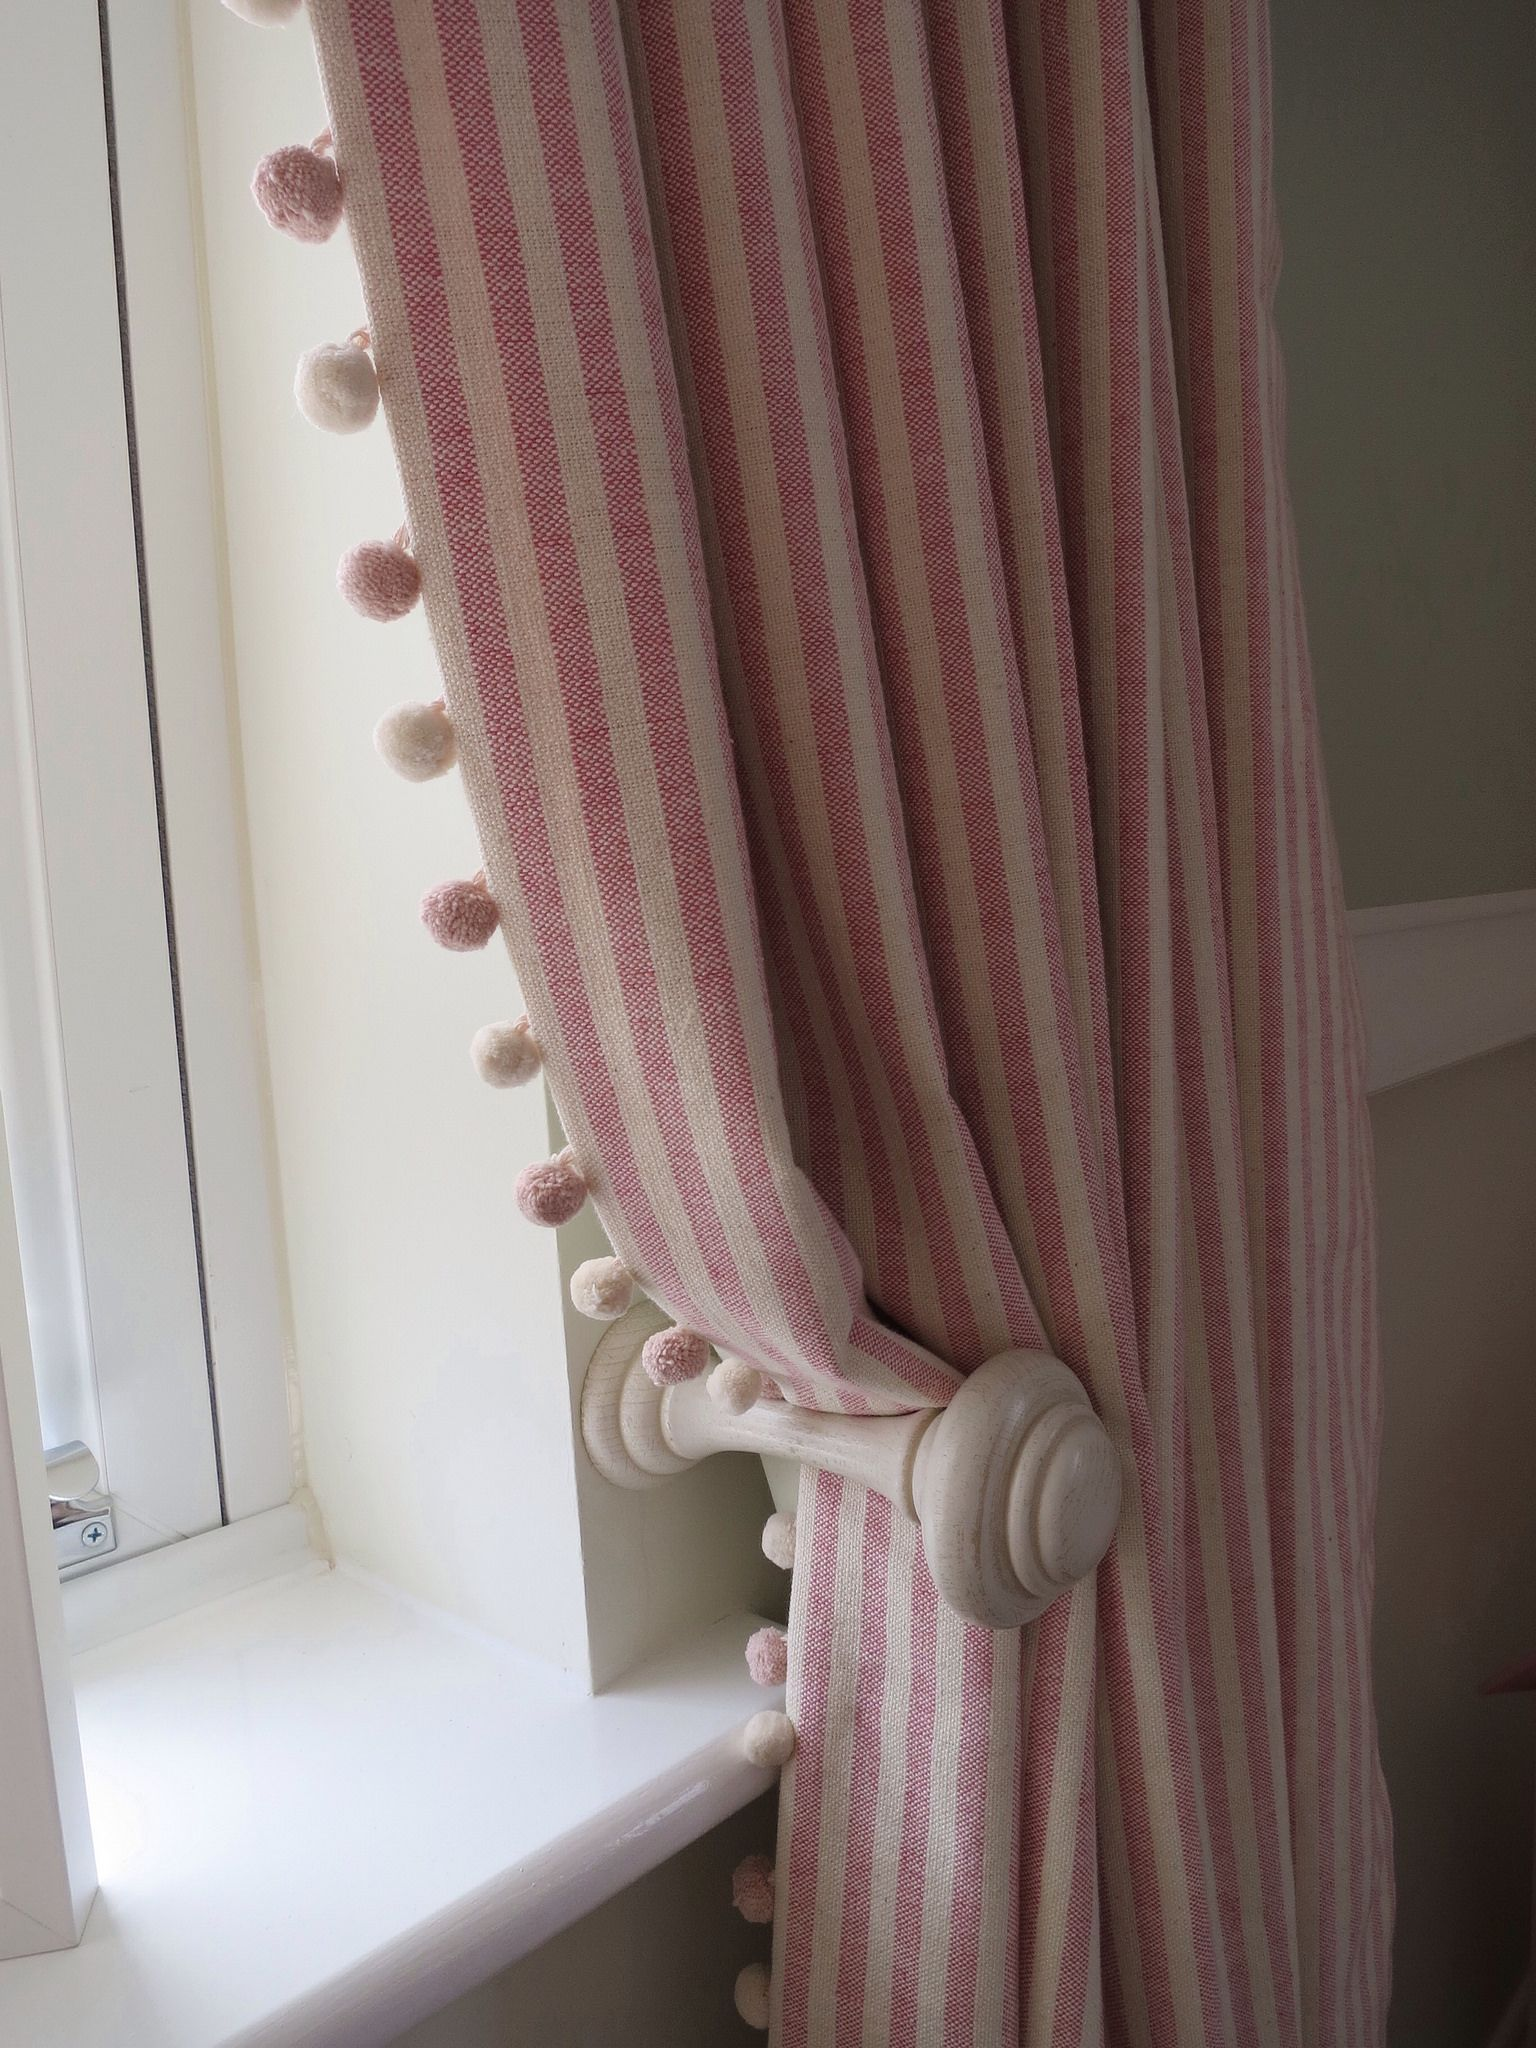 Striped Curtains With Pom Pom Trim In 2020 Curtains Living Room Curtains Curtain Decor